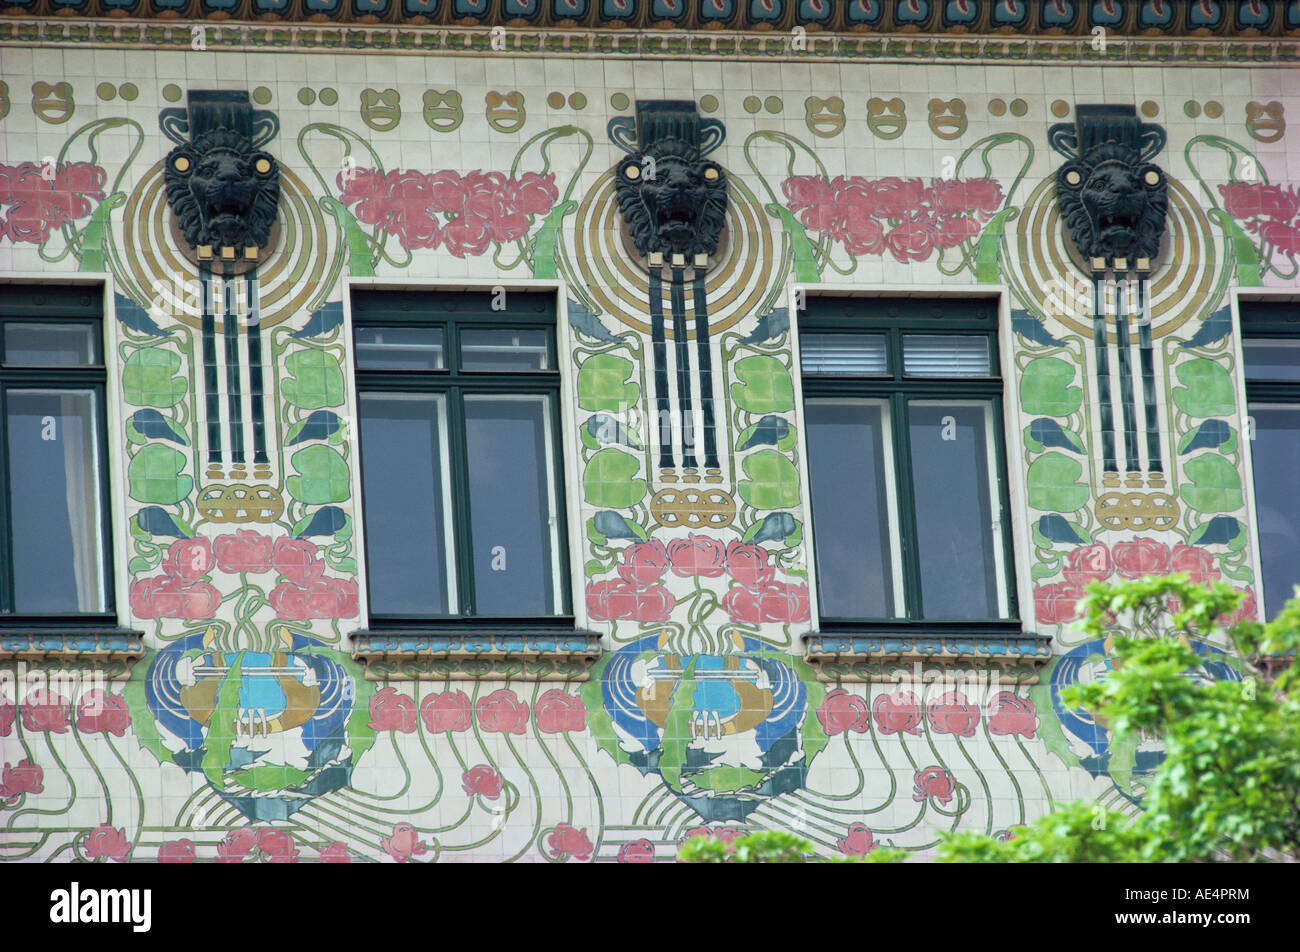 Detail of house decoration, Secessionist, Otto Wagner, Wienzele Street, Vienna, Austria, Europe - Stock Image